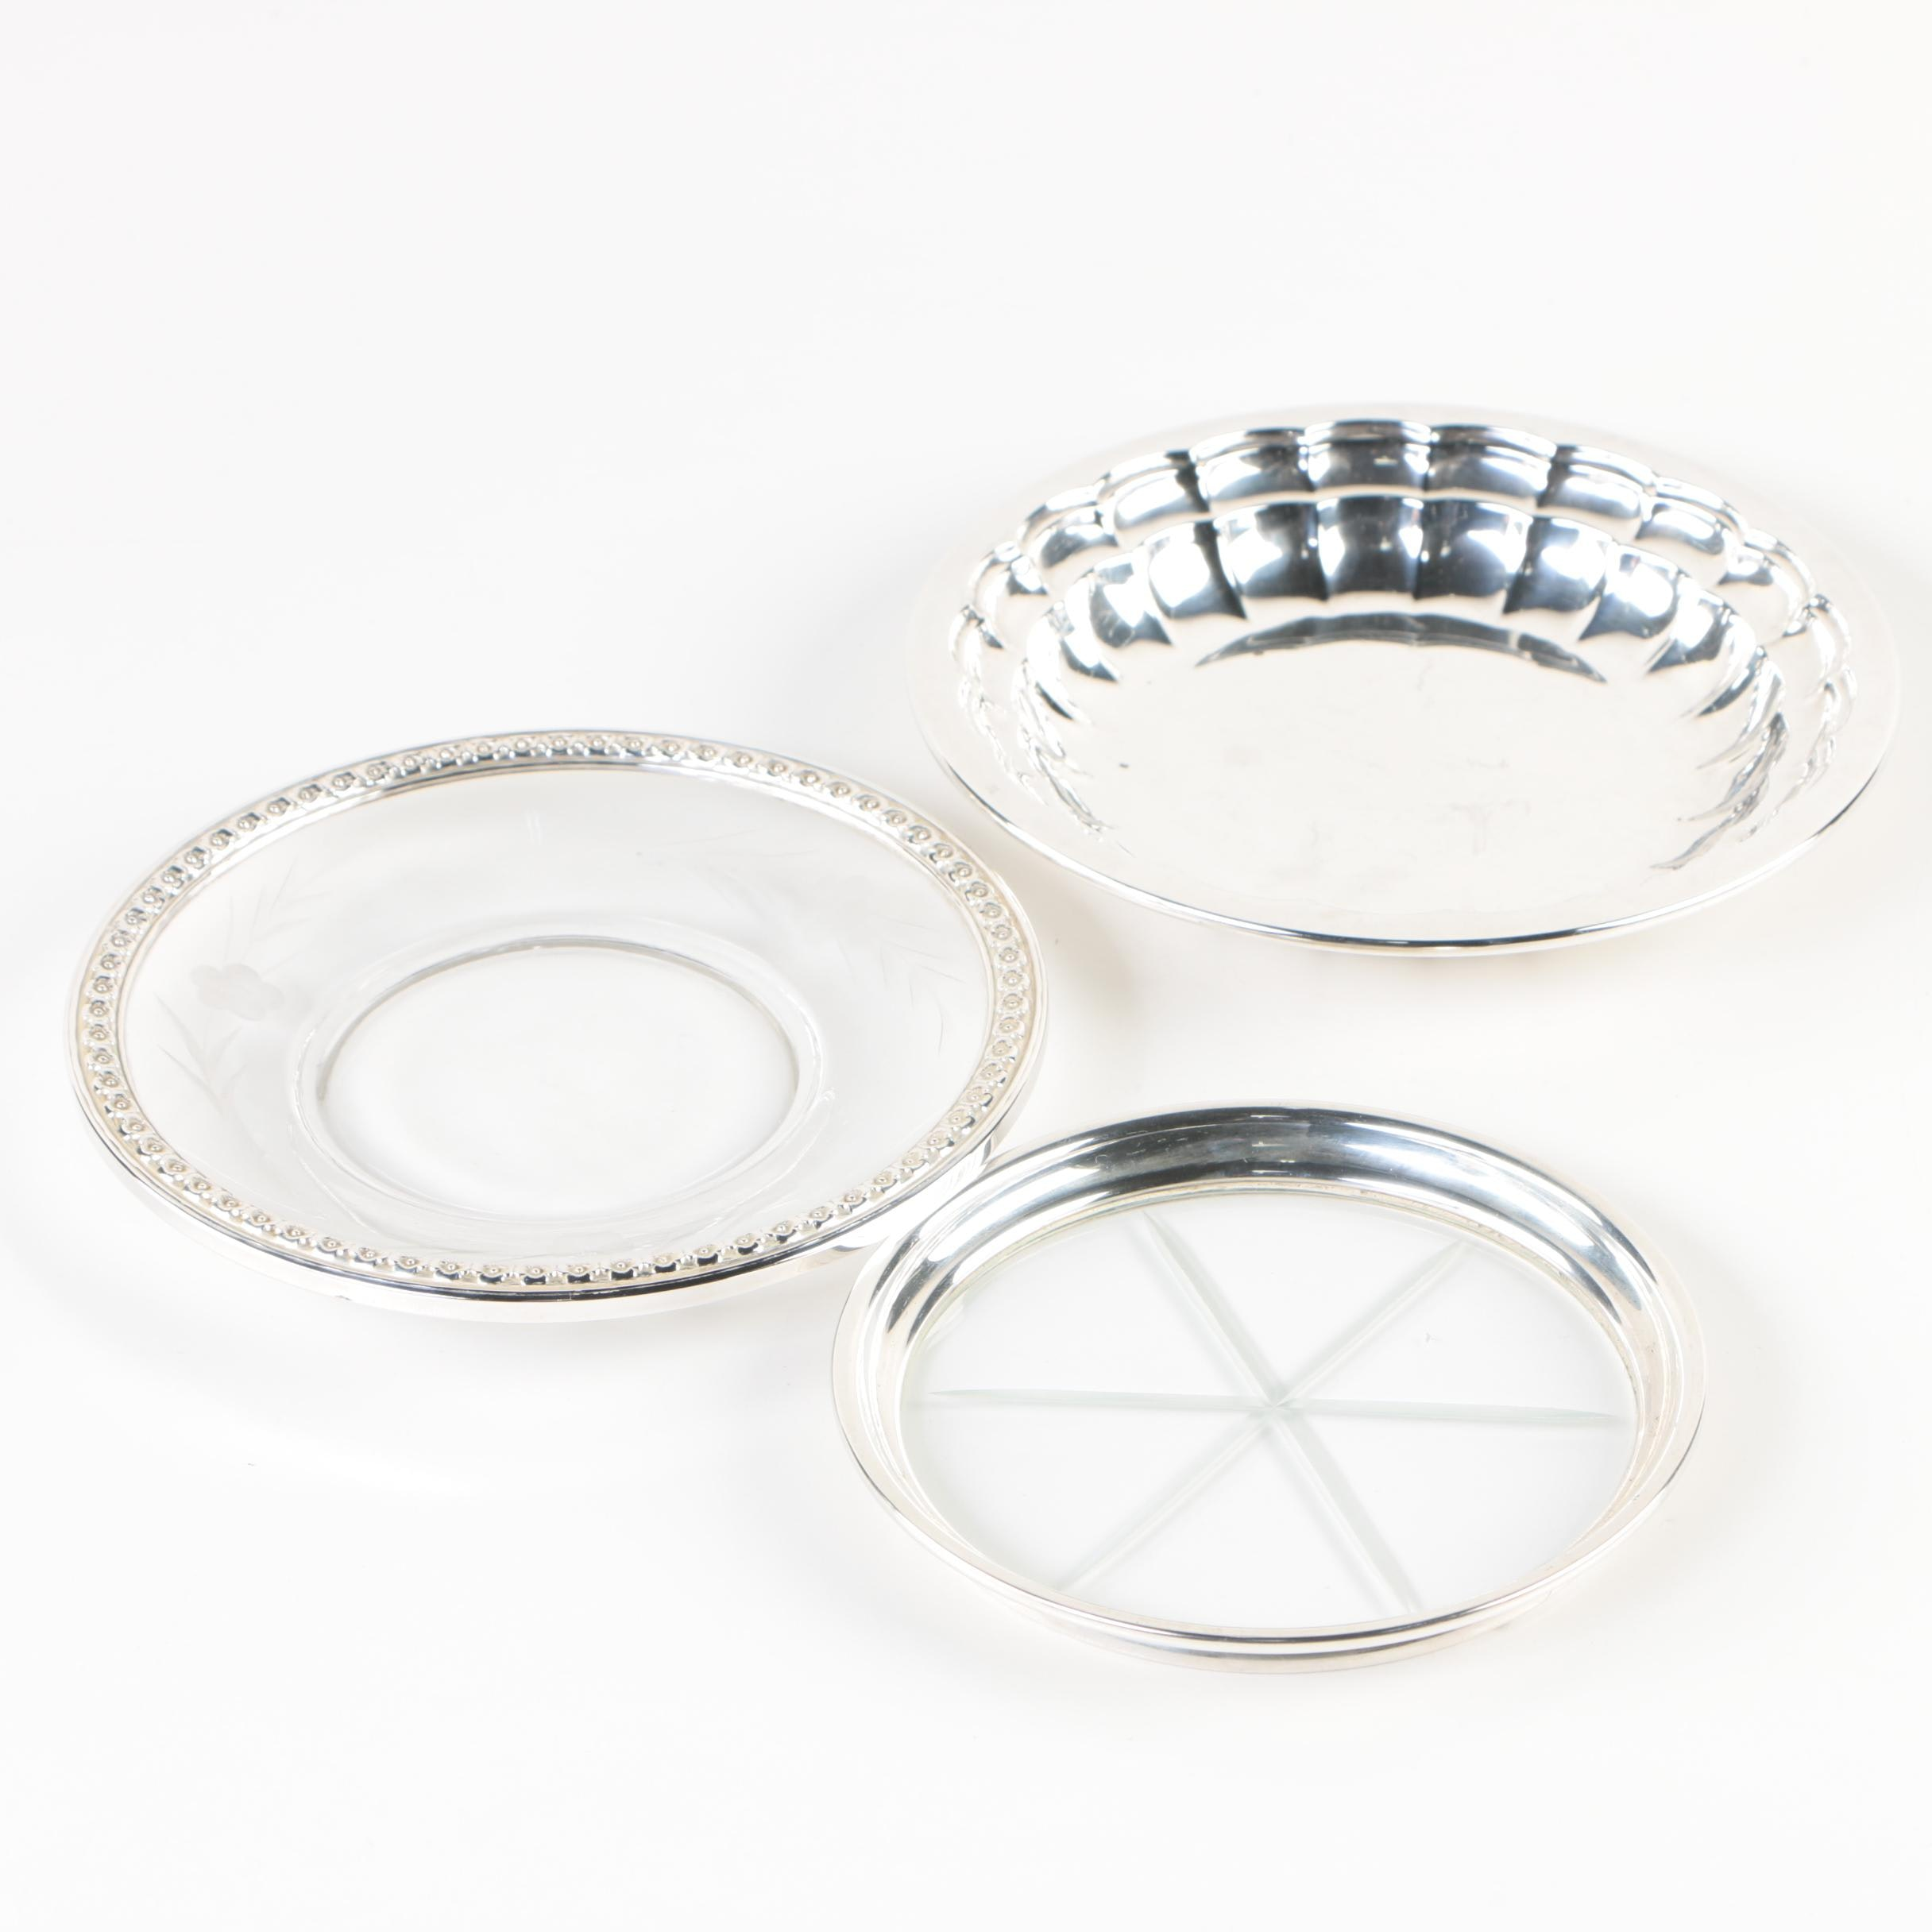 Frank W. Smith Sterling Bon Bon Bowl with Sterling Rimmed Dish and Coaster